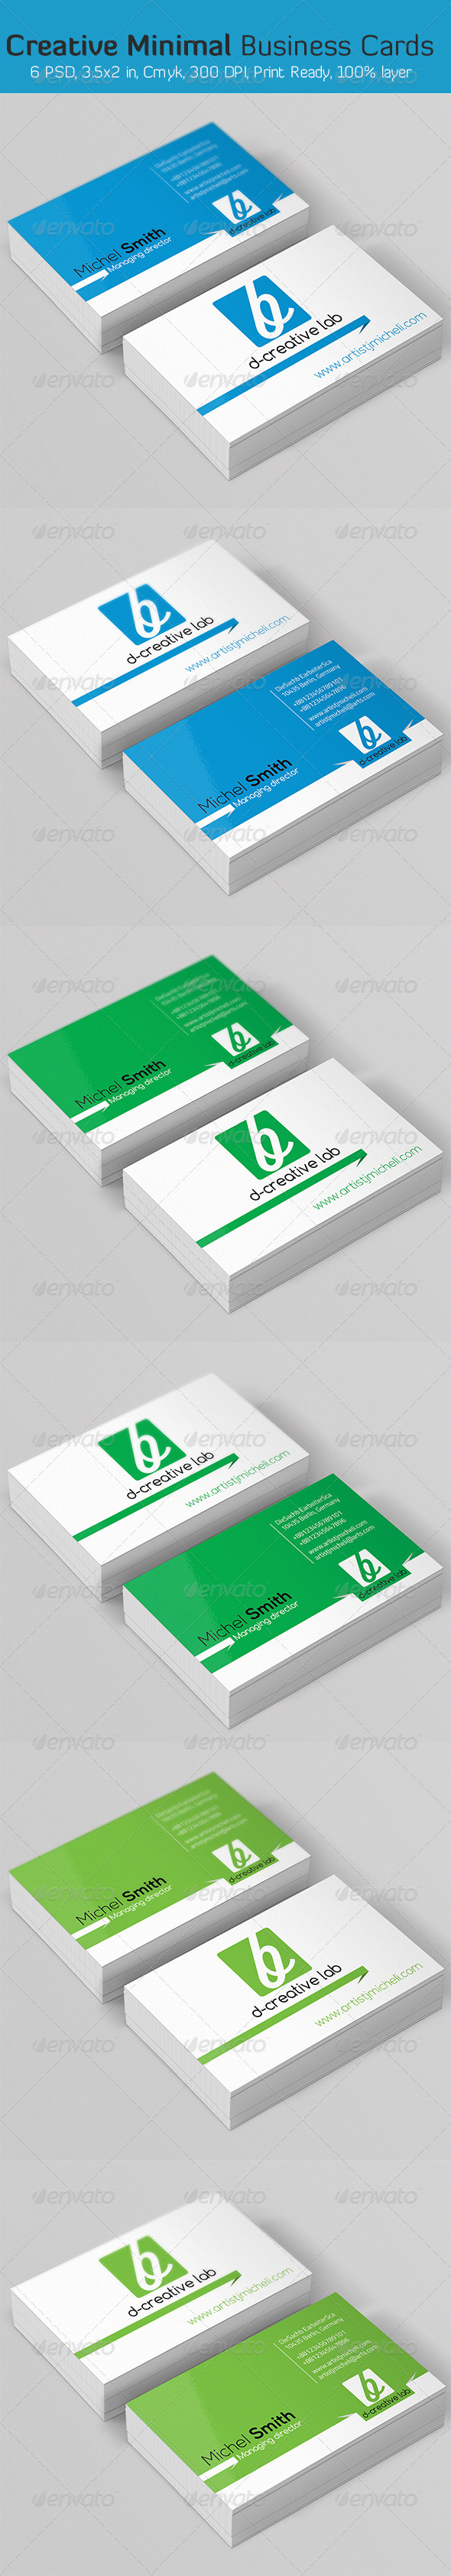 Creative Minimal Business Card - Business Cards Print Templates